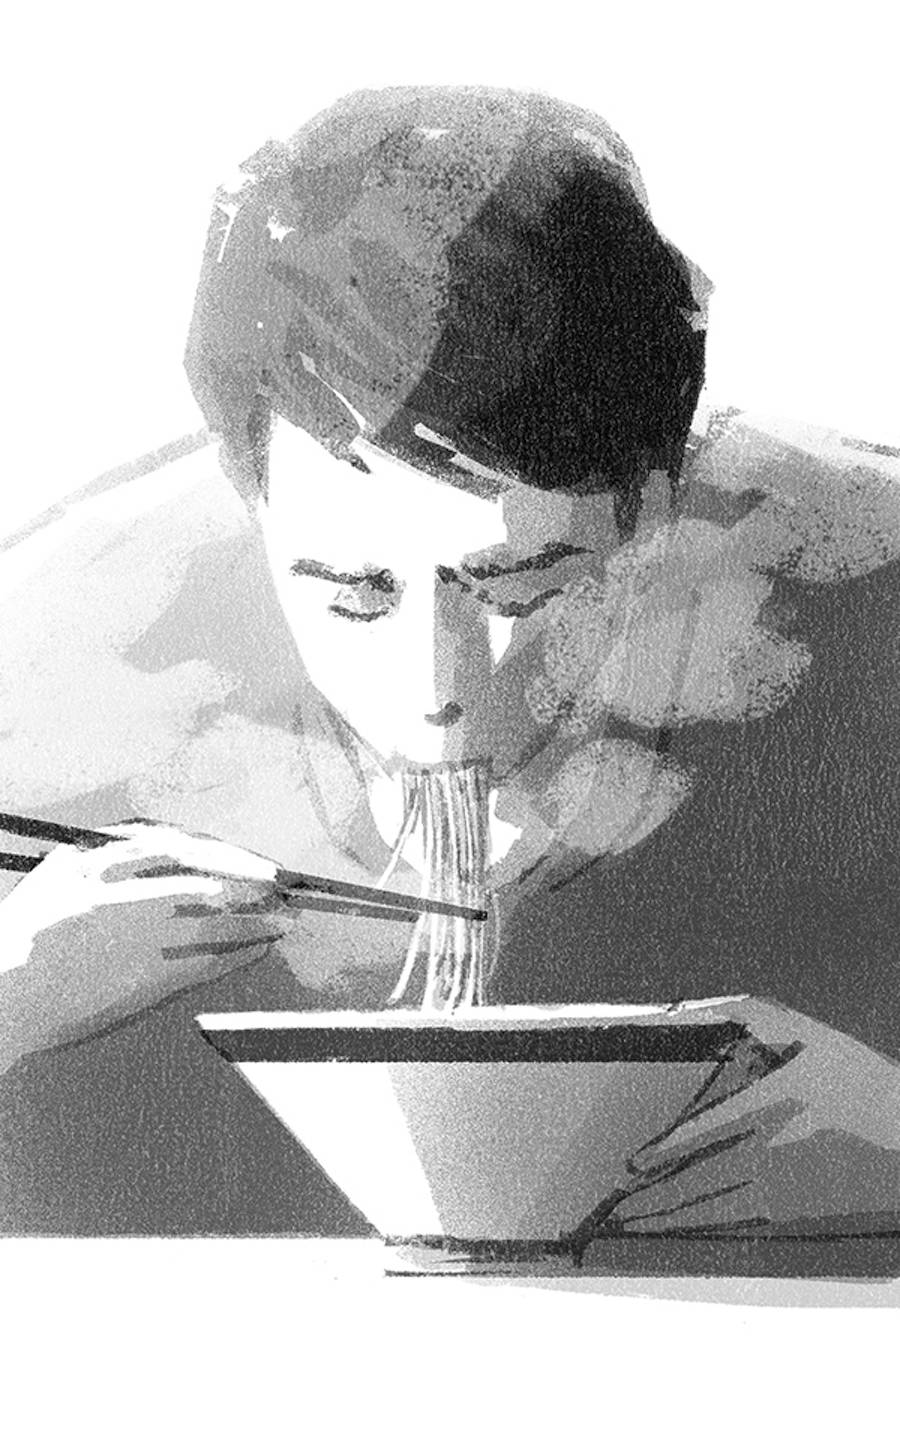 Daily Life Monochrome Illustrations by Mihoko Takata